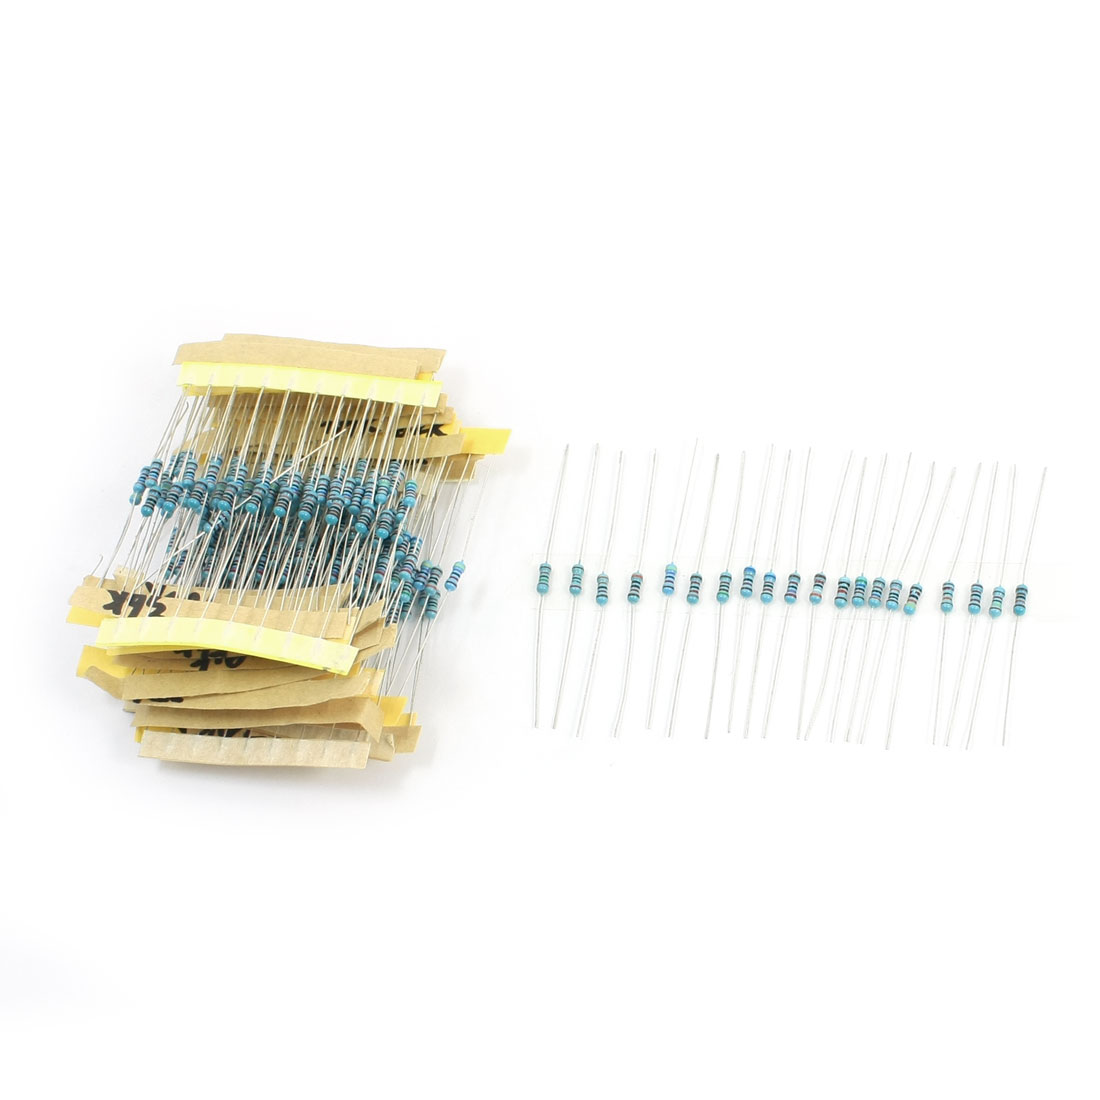 200pcs 5 Bands 20 Value Kinds Metal Film Resistors 20K-120K Ohm 1% 1/4W